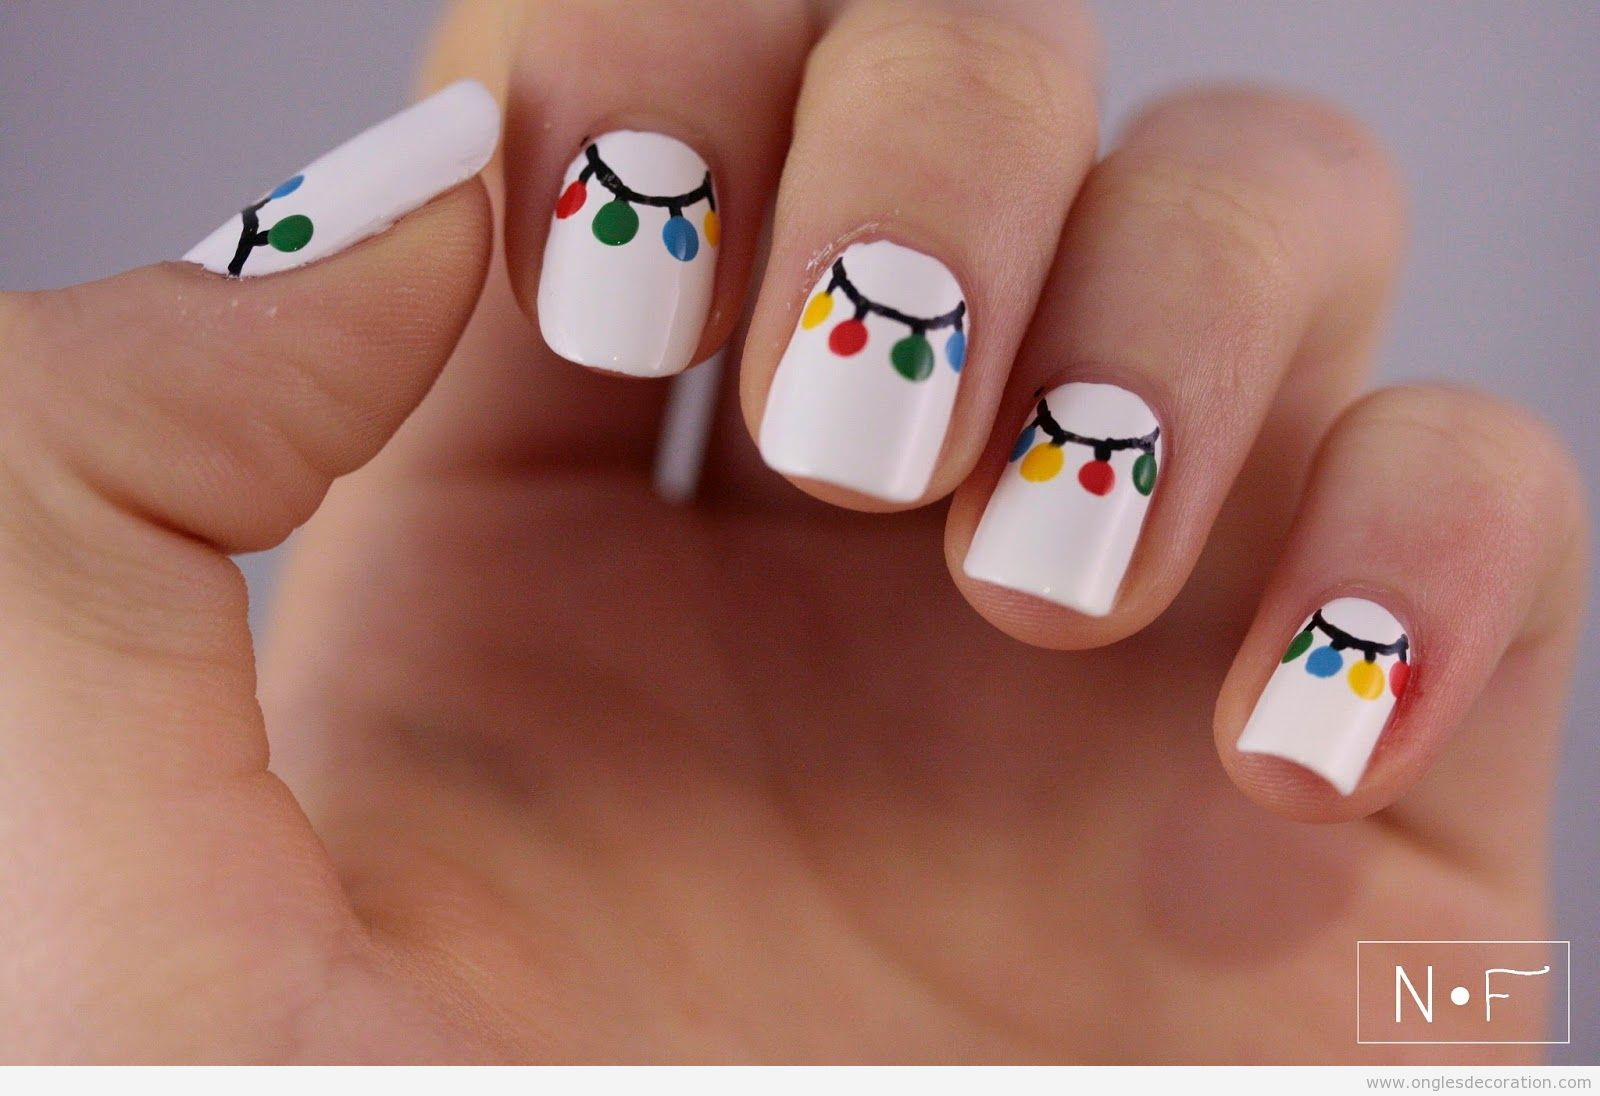 Decoration Ongle Nail Art Noël Décoration D Ongles Nail Art